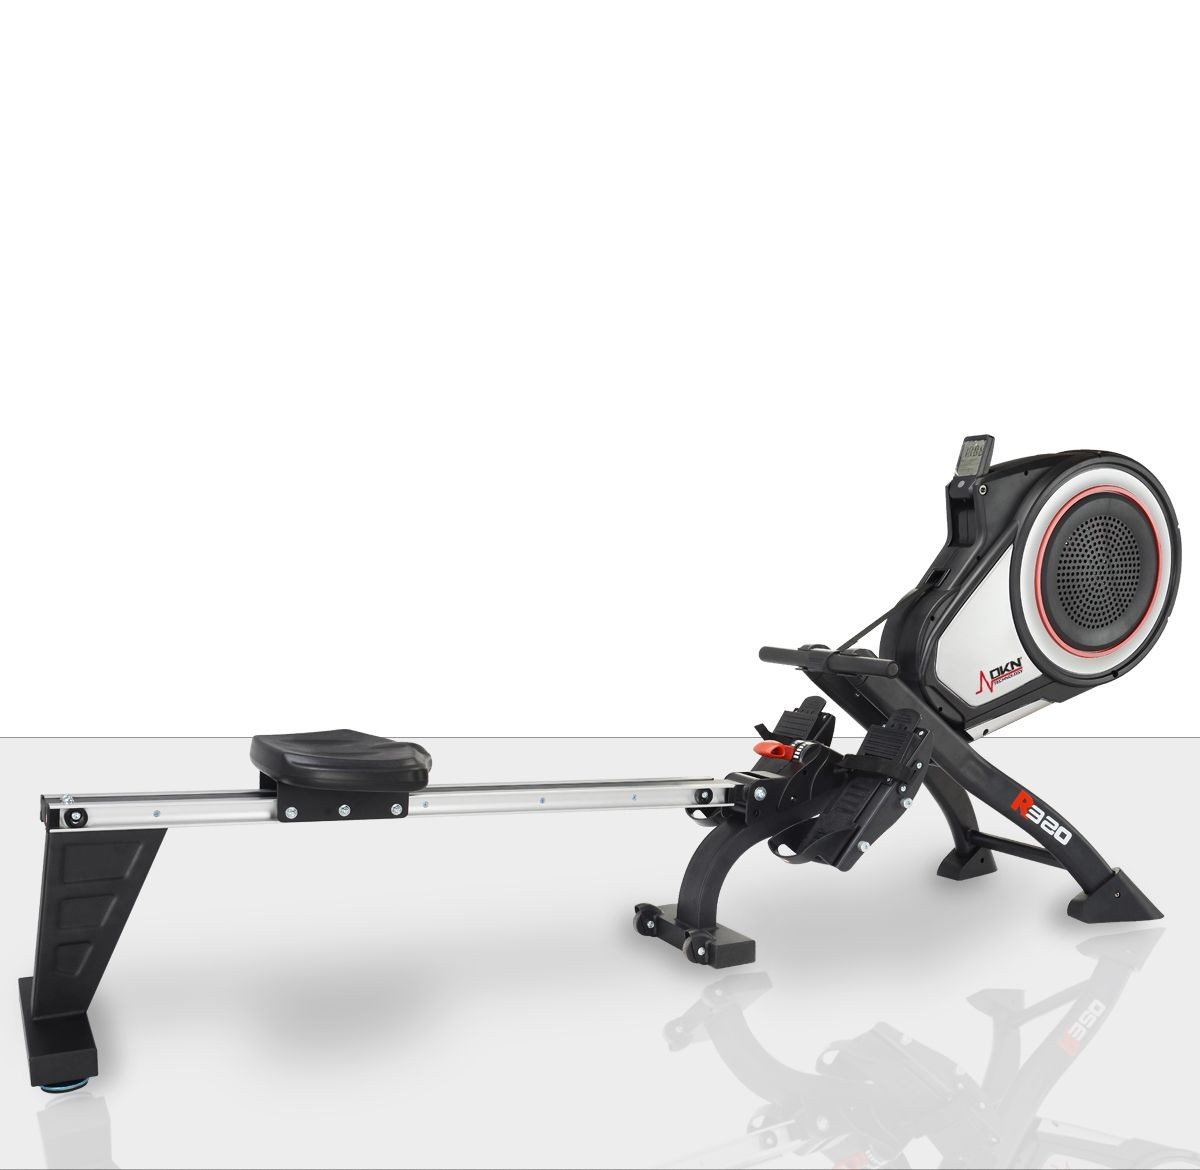 Roddmaskin test DKN R-320 Air Rower